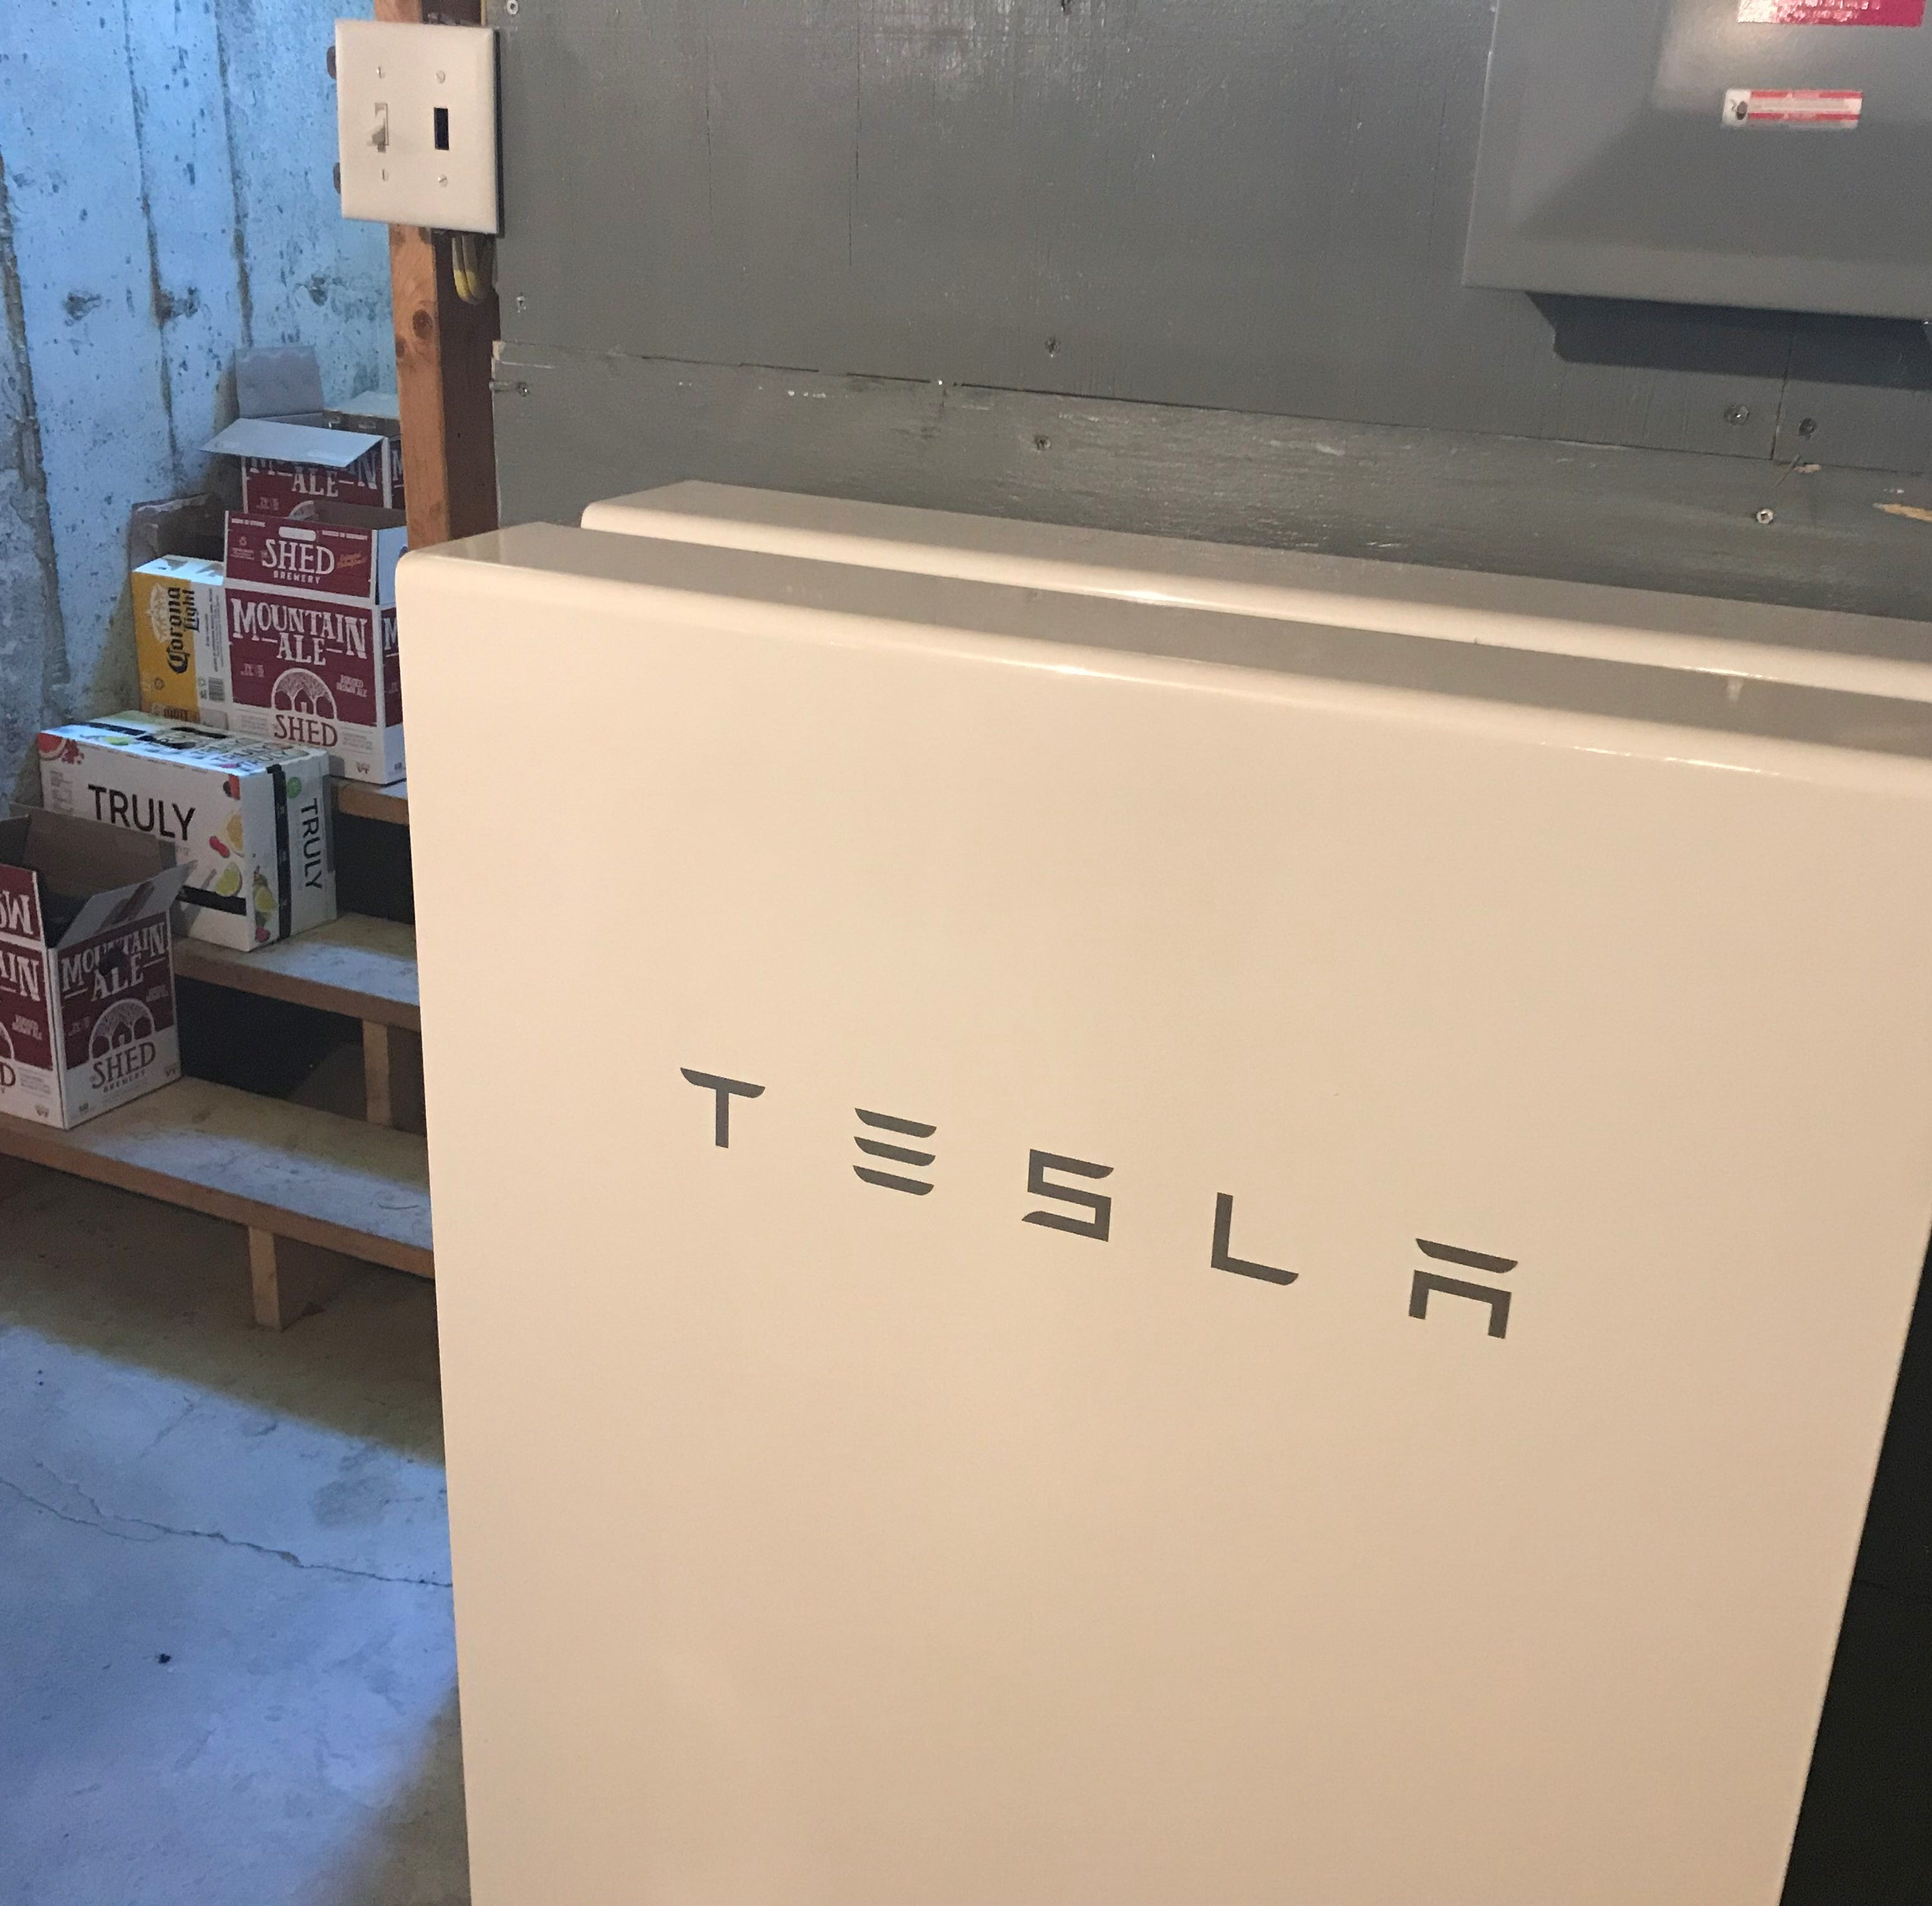 Tesla Powerwall provides seamless backup for some Vermonters when the power's out